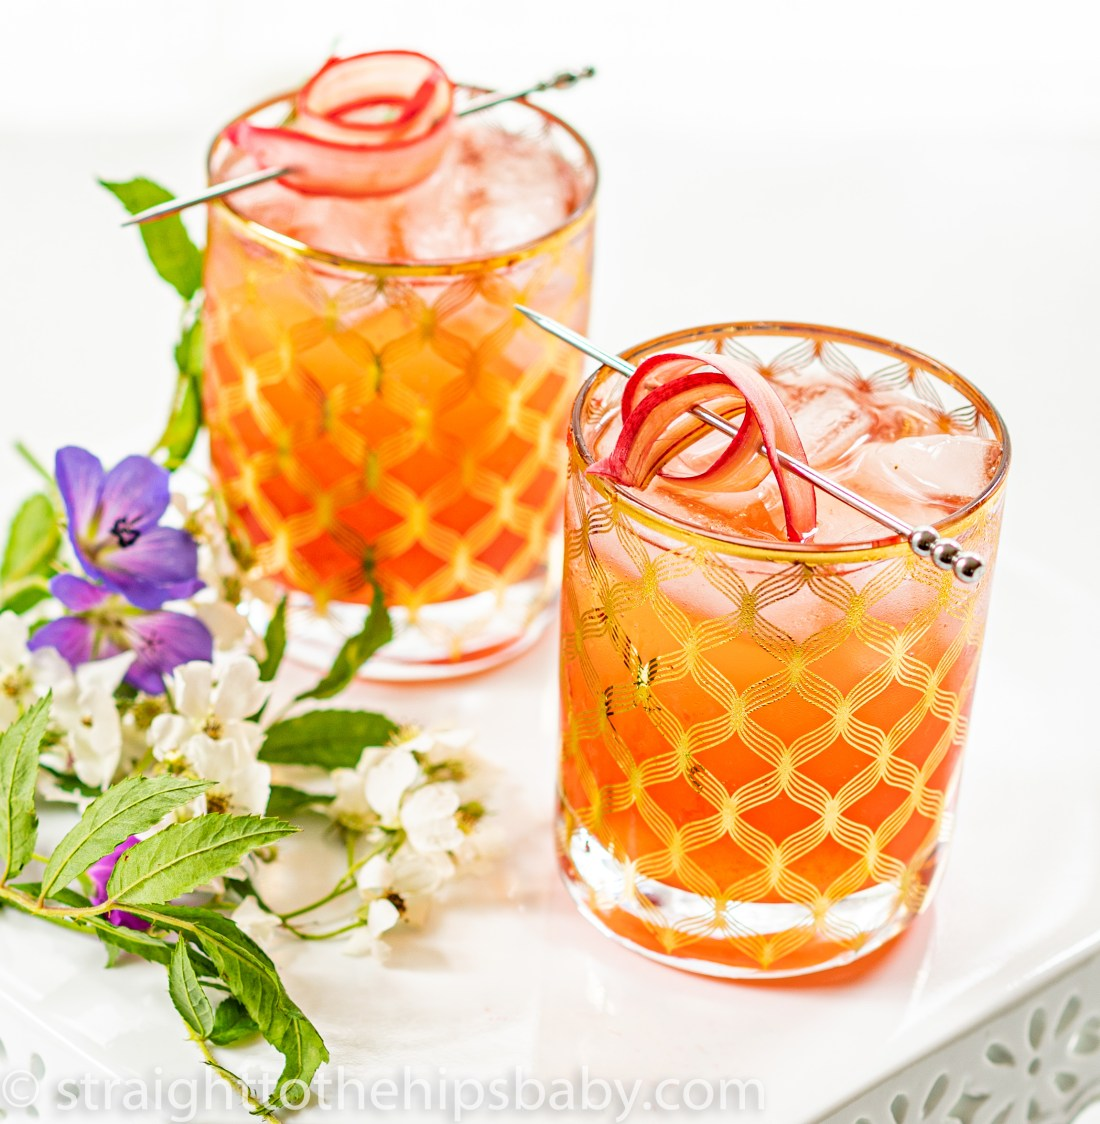 two refreshing looking pink cocktails in gold accented glasses, with floral garnishes